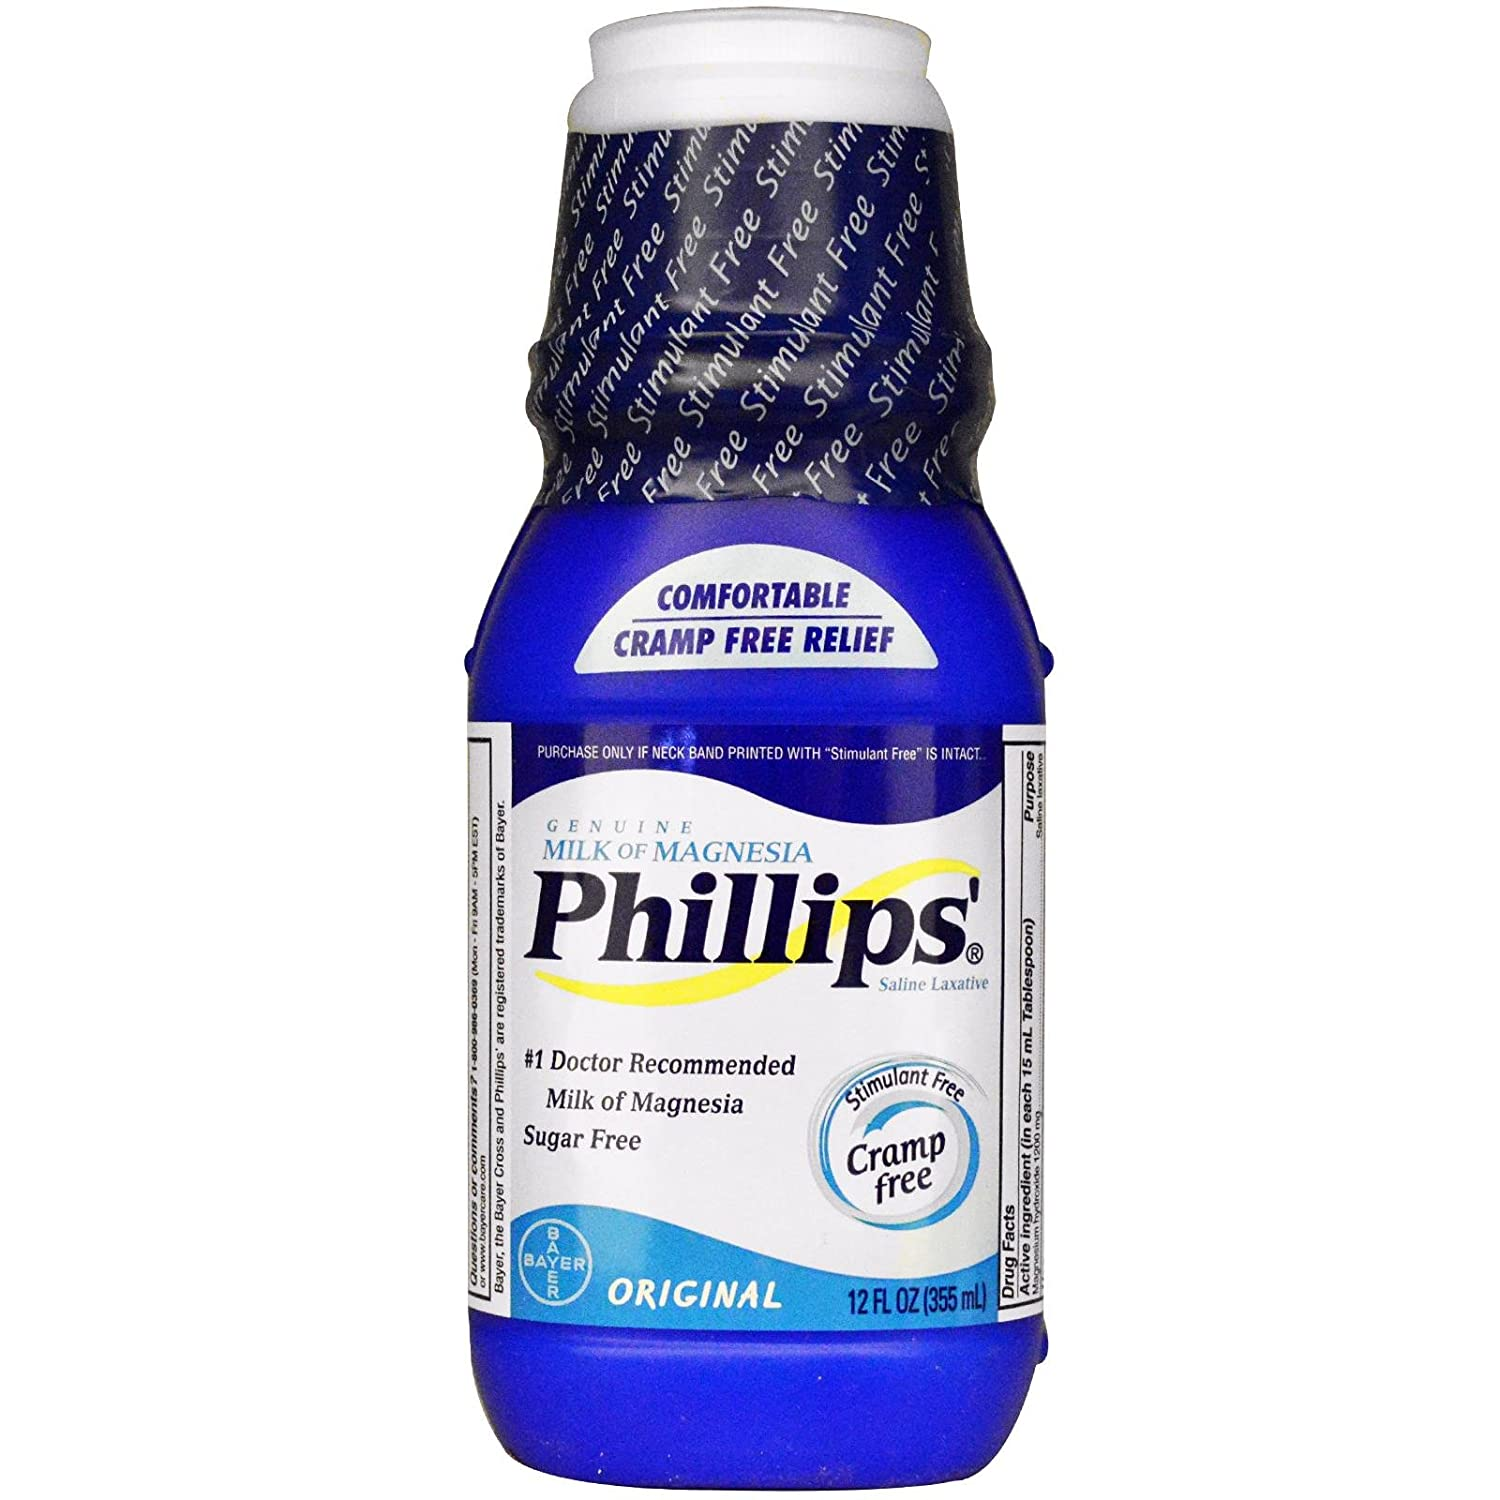 Phillips Milk of Magnesia, Original 12 fl oz (355 ml) (Pack of 1) by Phillips: Amazon.es: Belleza